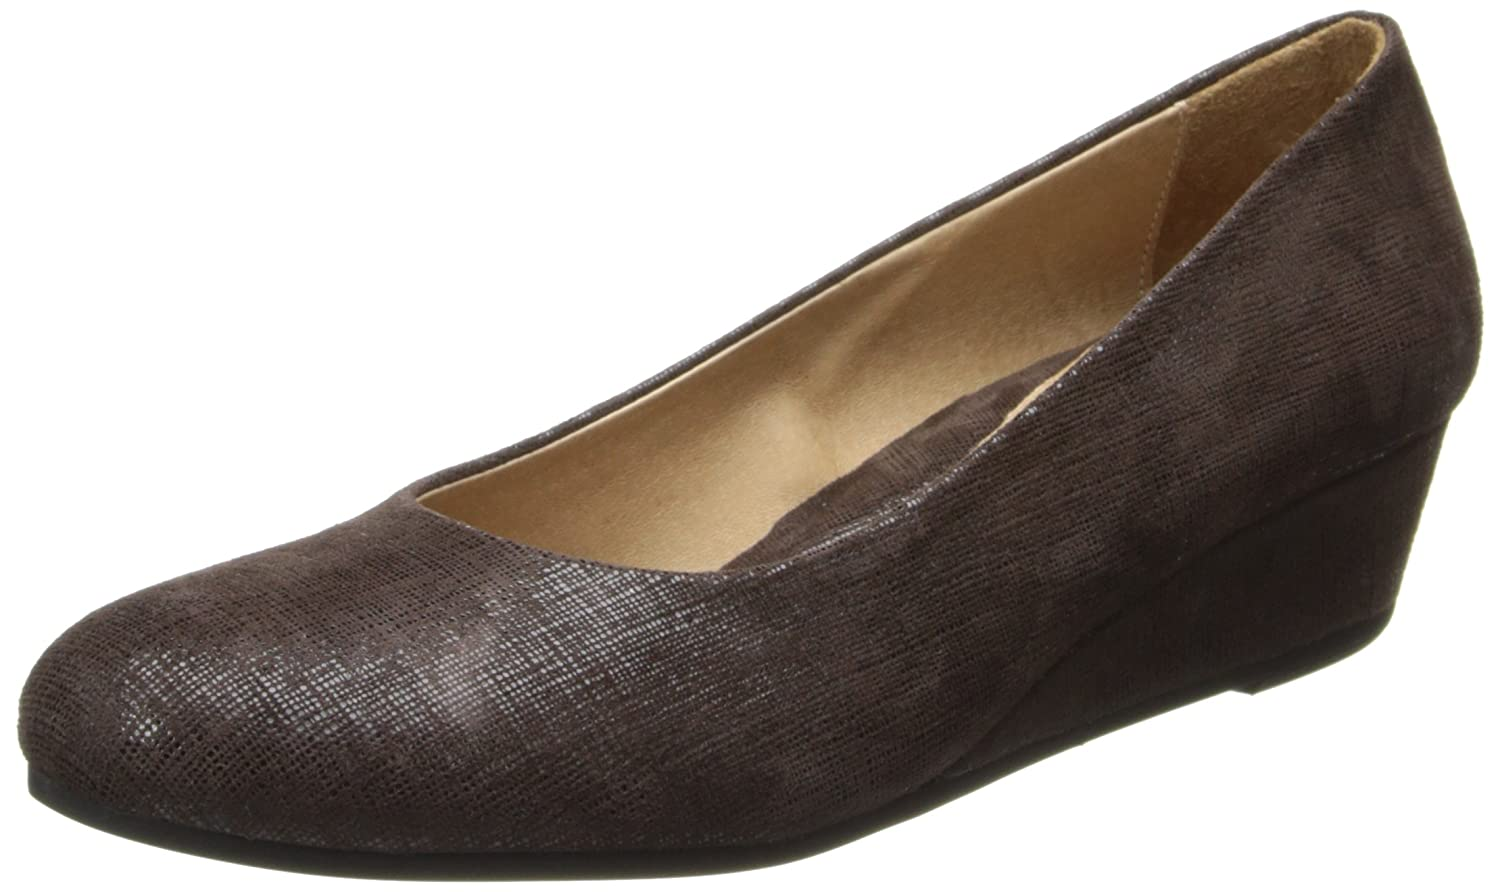 French Sole FS/NY Women's Gumdrop Wedge Pump B00JLZ3NF4 5.5 B(M) US|Brown Cartizze